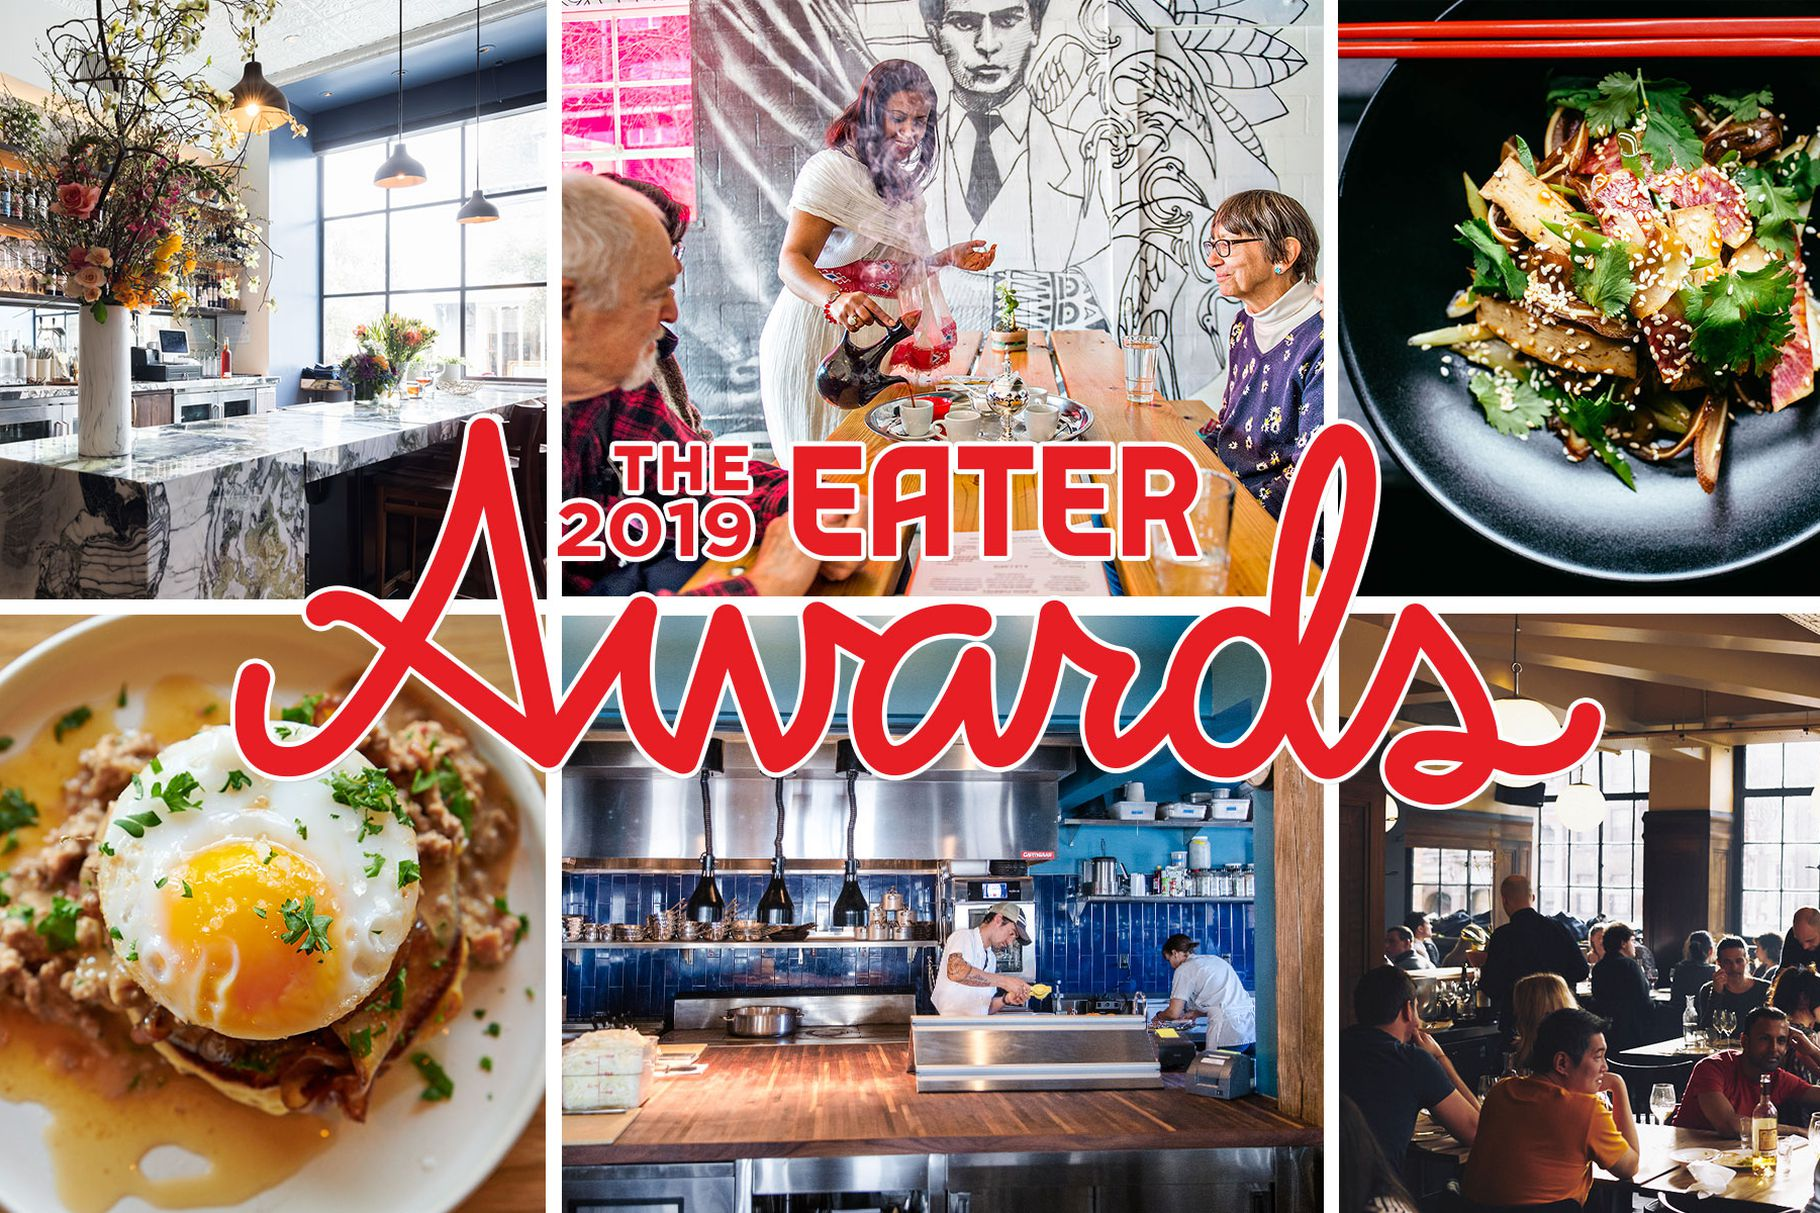 Nominate the Best Restaurants of 2019 for This Year's Eater Awards